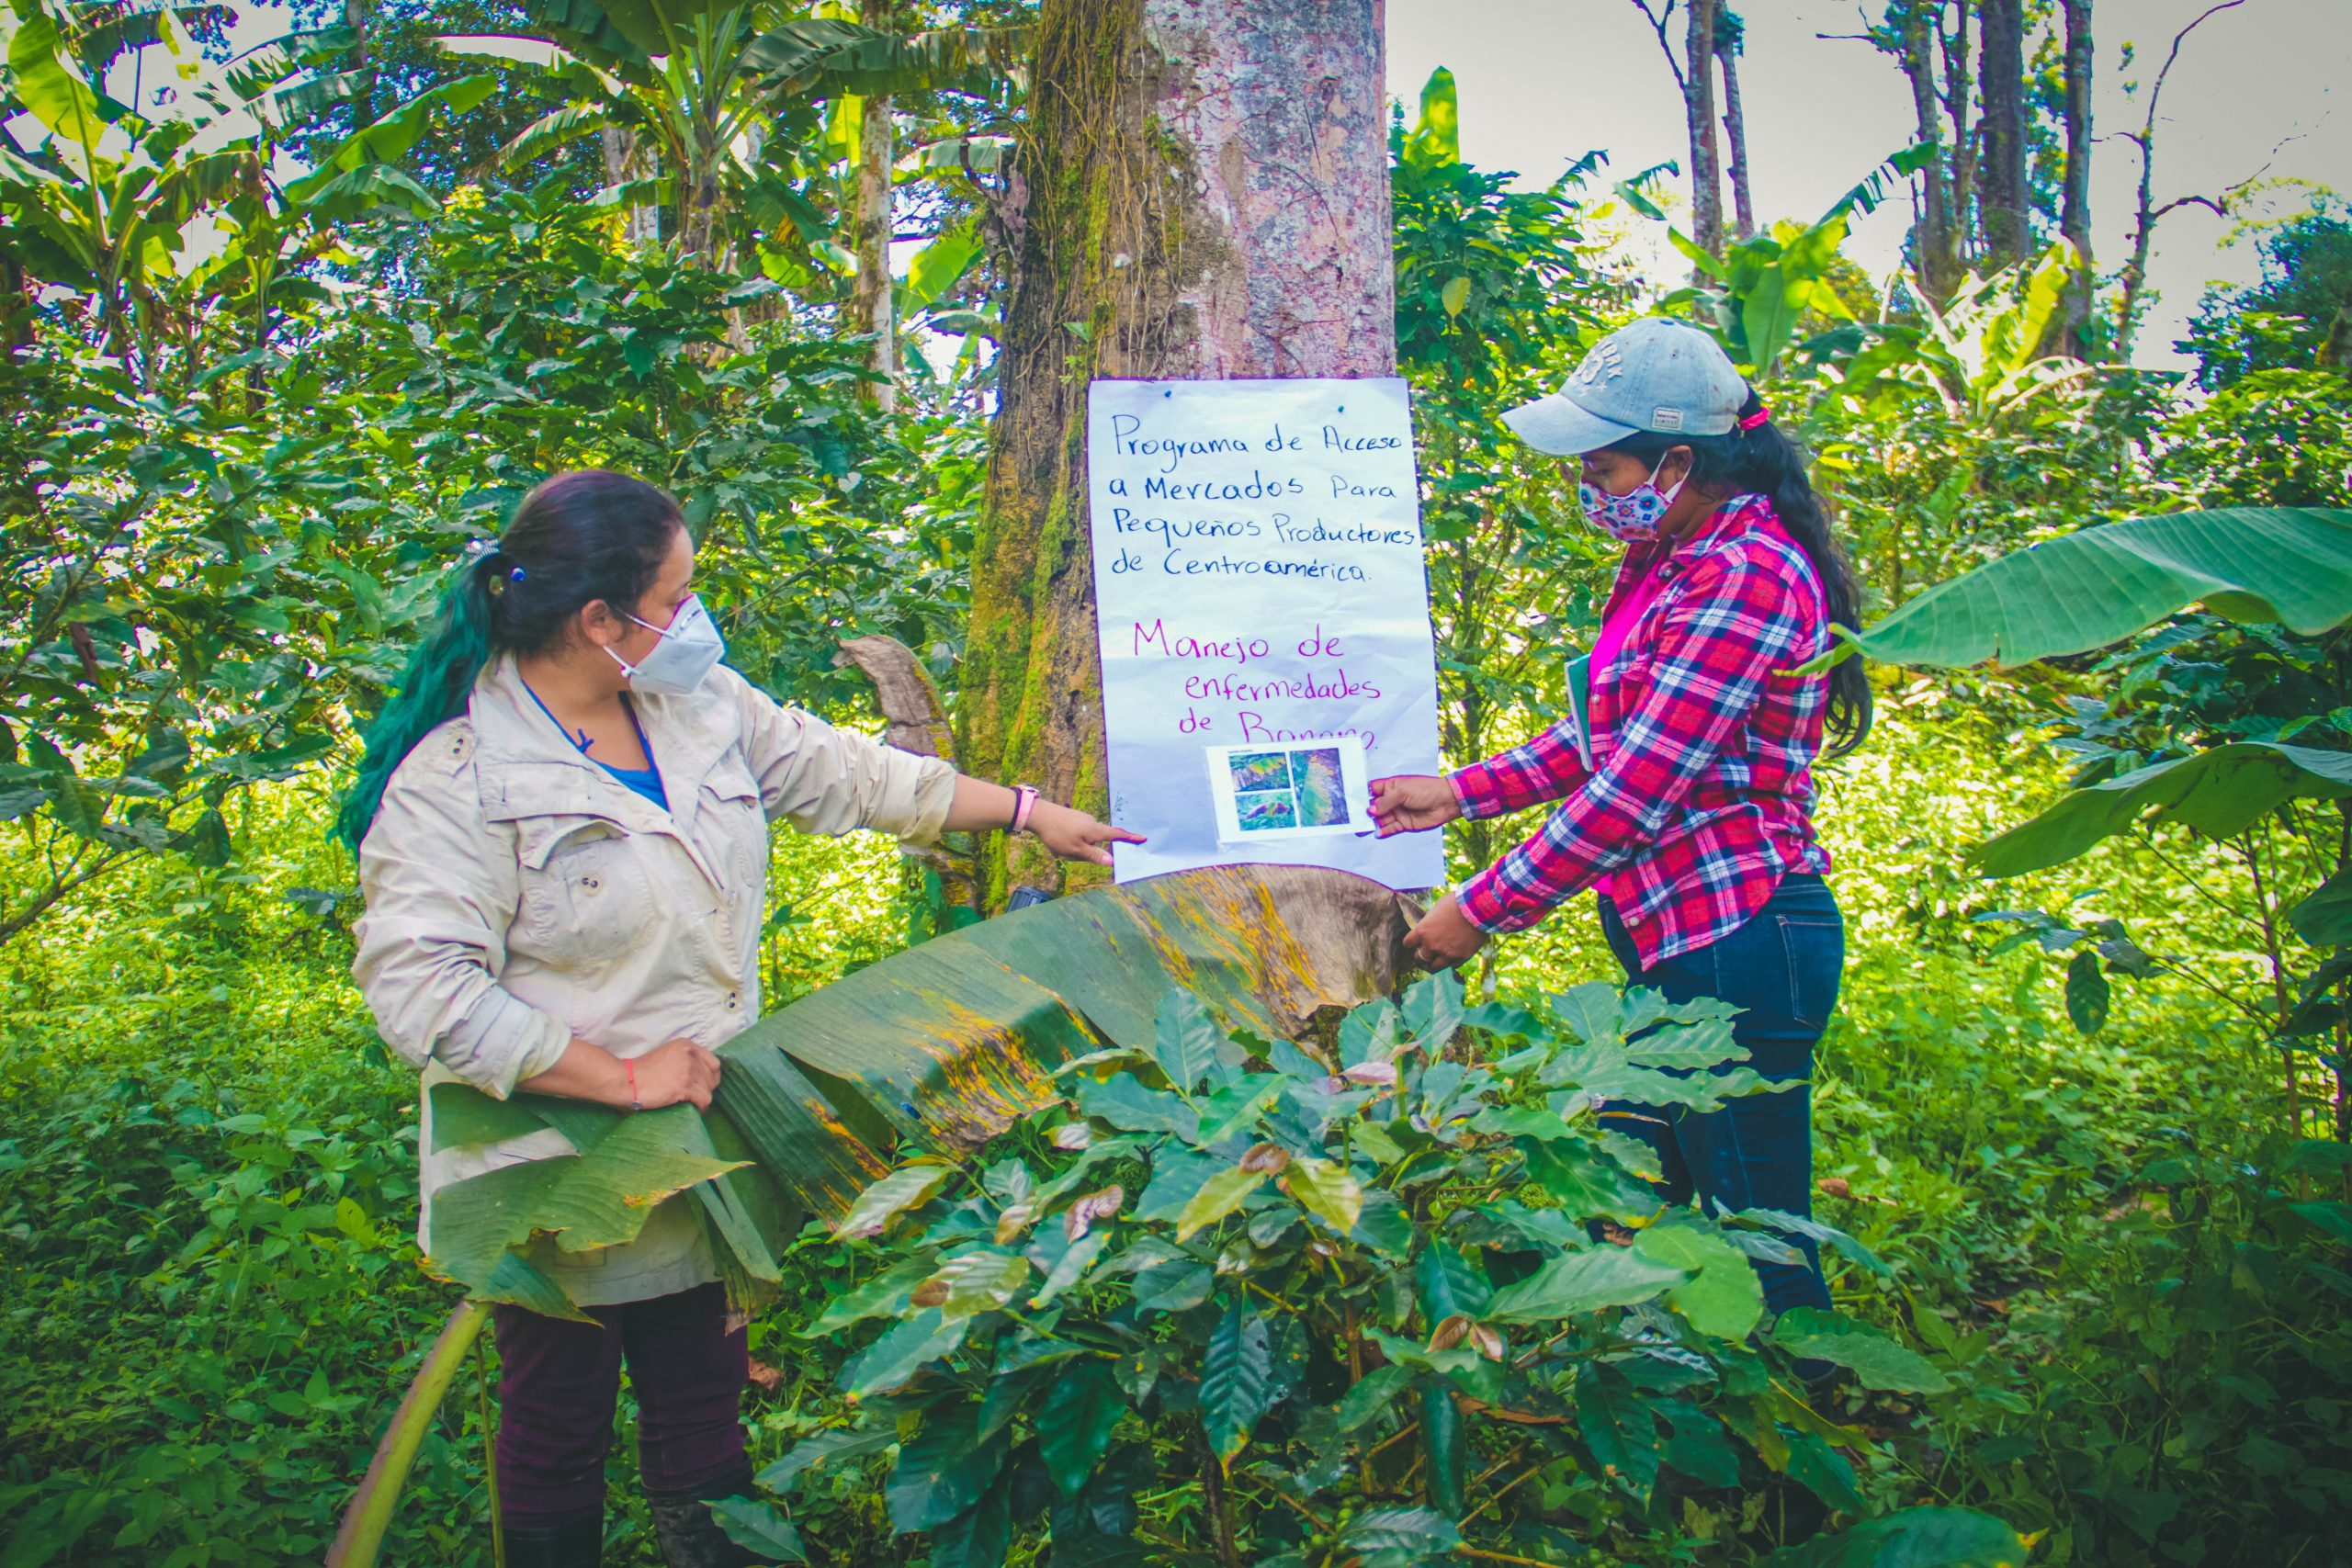 """A photo of Rosa Gonzales with another TNS trainer from from TechnoServe's Smallholder Market Access Program , standing in a densely forested area by coffee and banana trees placing a sign on a tree written in Spanish that says """"Programa de acceso a Mercados para pequeños productores de Centroamérica. English translation: """"Market access program for small producers in Central America.""""The woman on the right is wearing a tan jacket and pants with her hair in a ponytail, while the woman on the right is wearing a red checkered shirt, jeans, and a baseball cap. Both women are wearing masks due to the COVID-19 pandemic and have their hair tied back in a ponytail."""